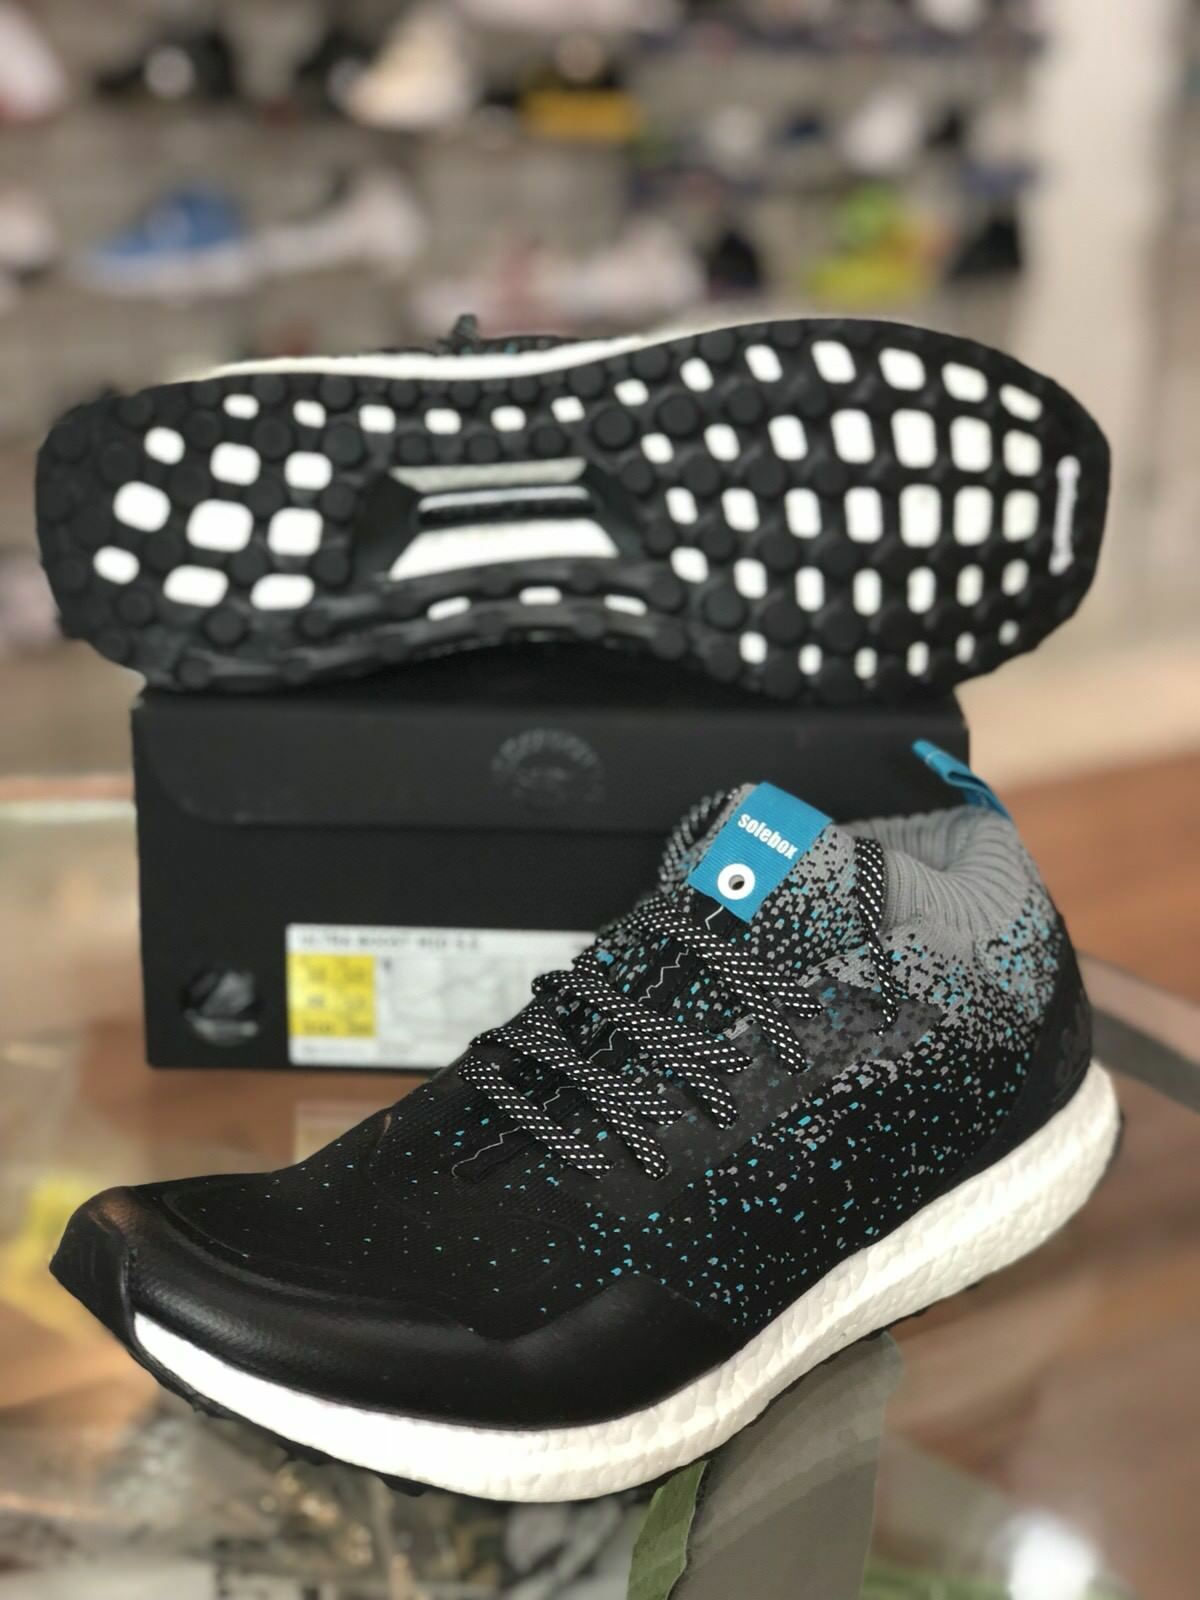 ADIDAS ULTRA BOOST MID S.E. GREY SOLEBOX PACKER SHOES BLACK GREY S.E. BLUE CM7882 Size 13 c5f512